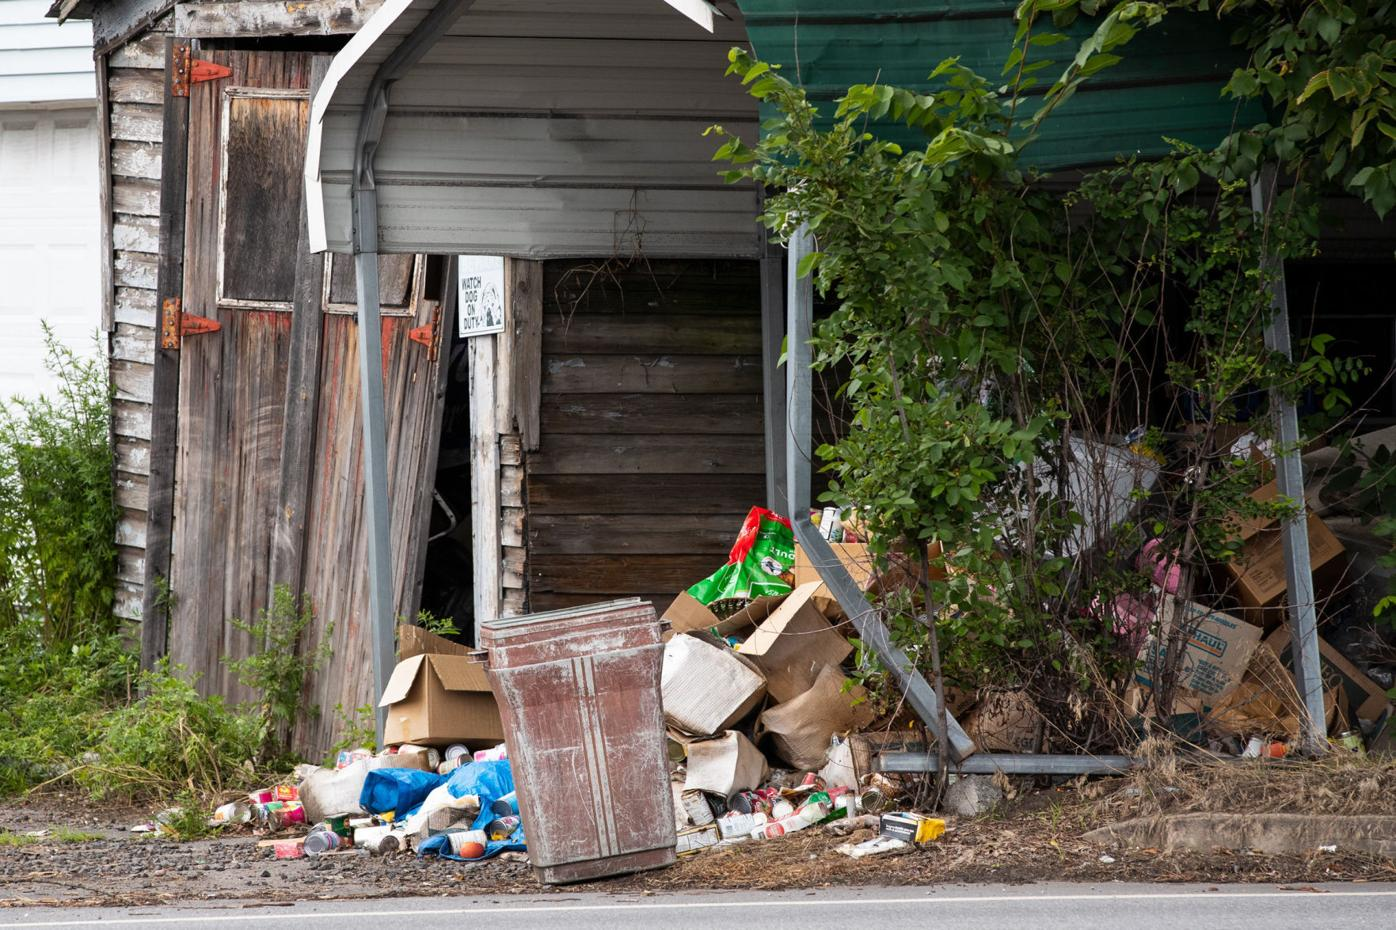 Tanis misses deadline to clean rotting food out of carport, court finds